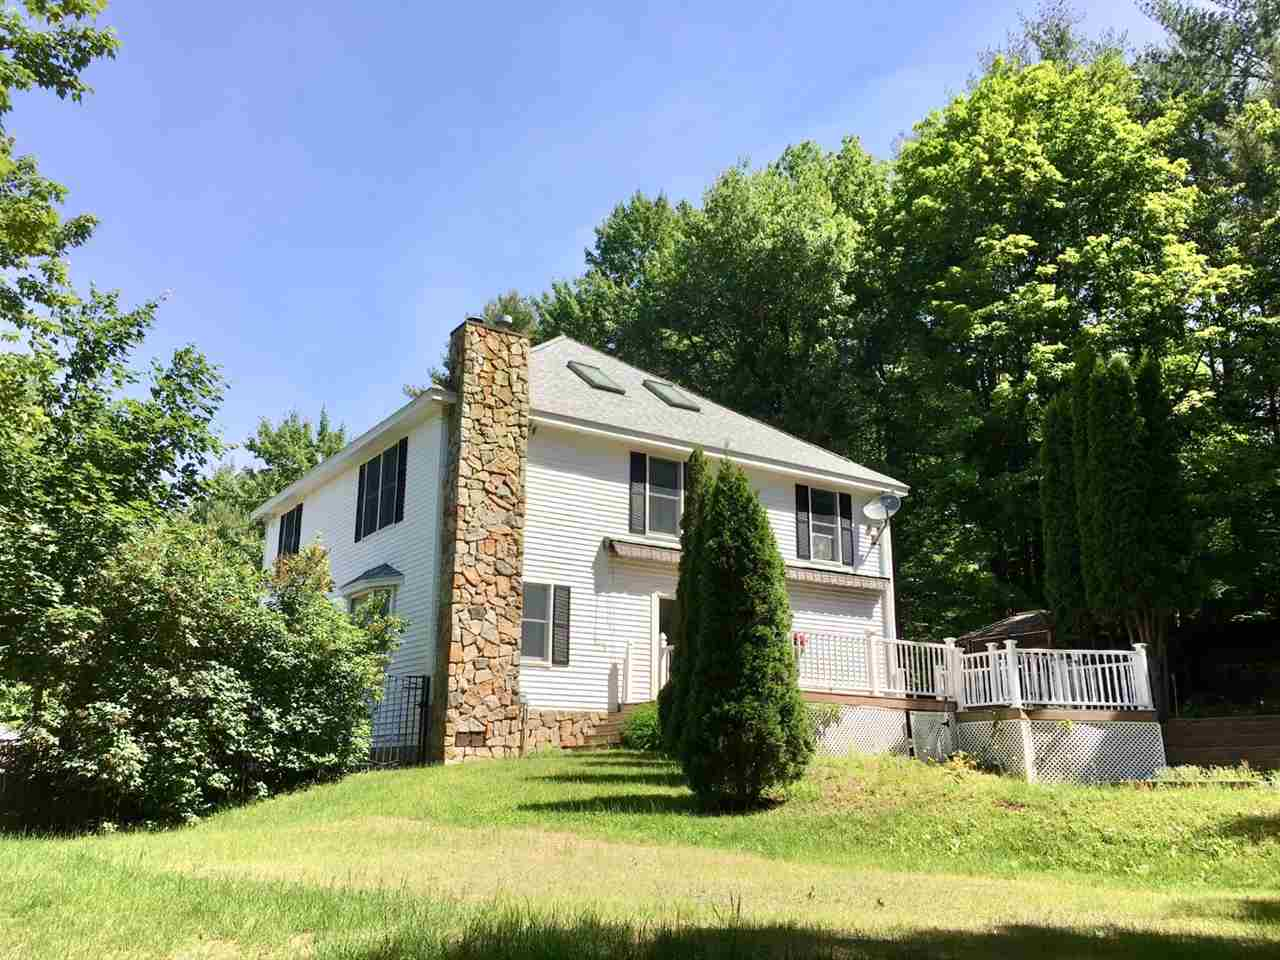 Photo of 26 Juniper Drive Belmont NH 03220